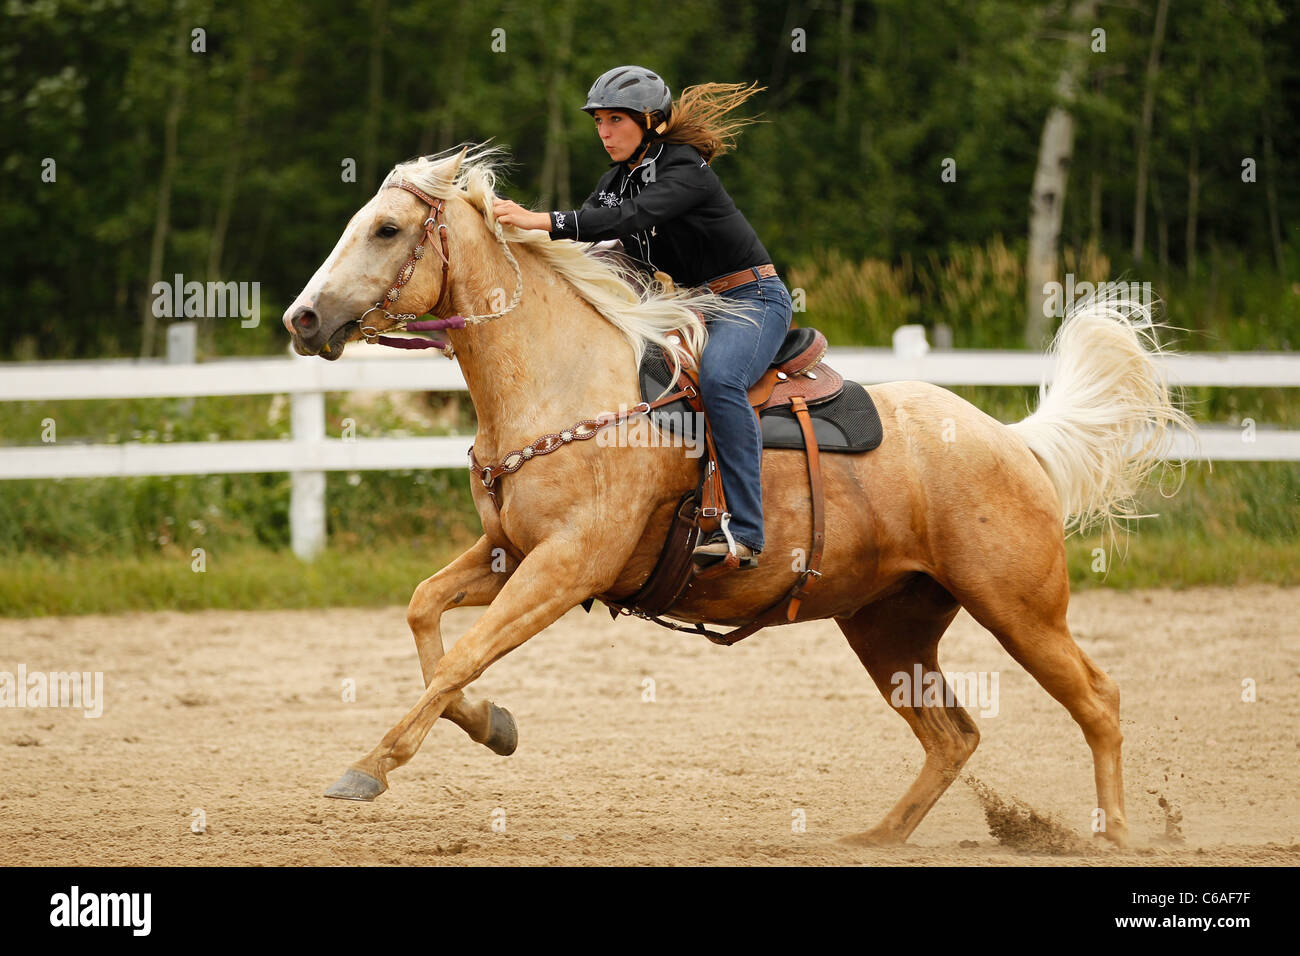 Palomino Horse And Female Rider Galloping In Western Gaming Race Stock Photo Alamy